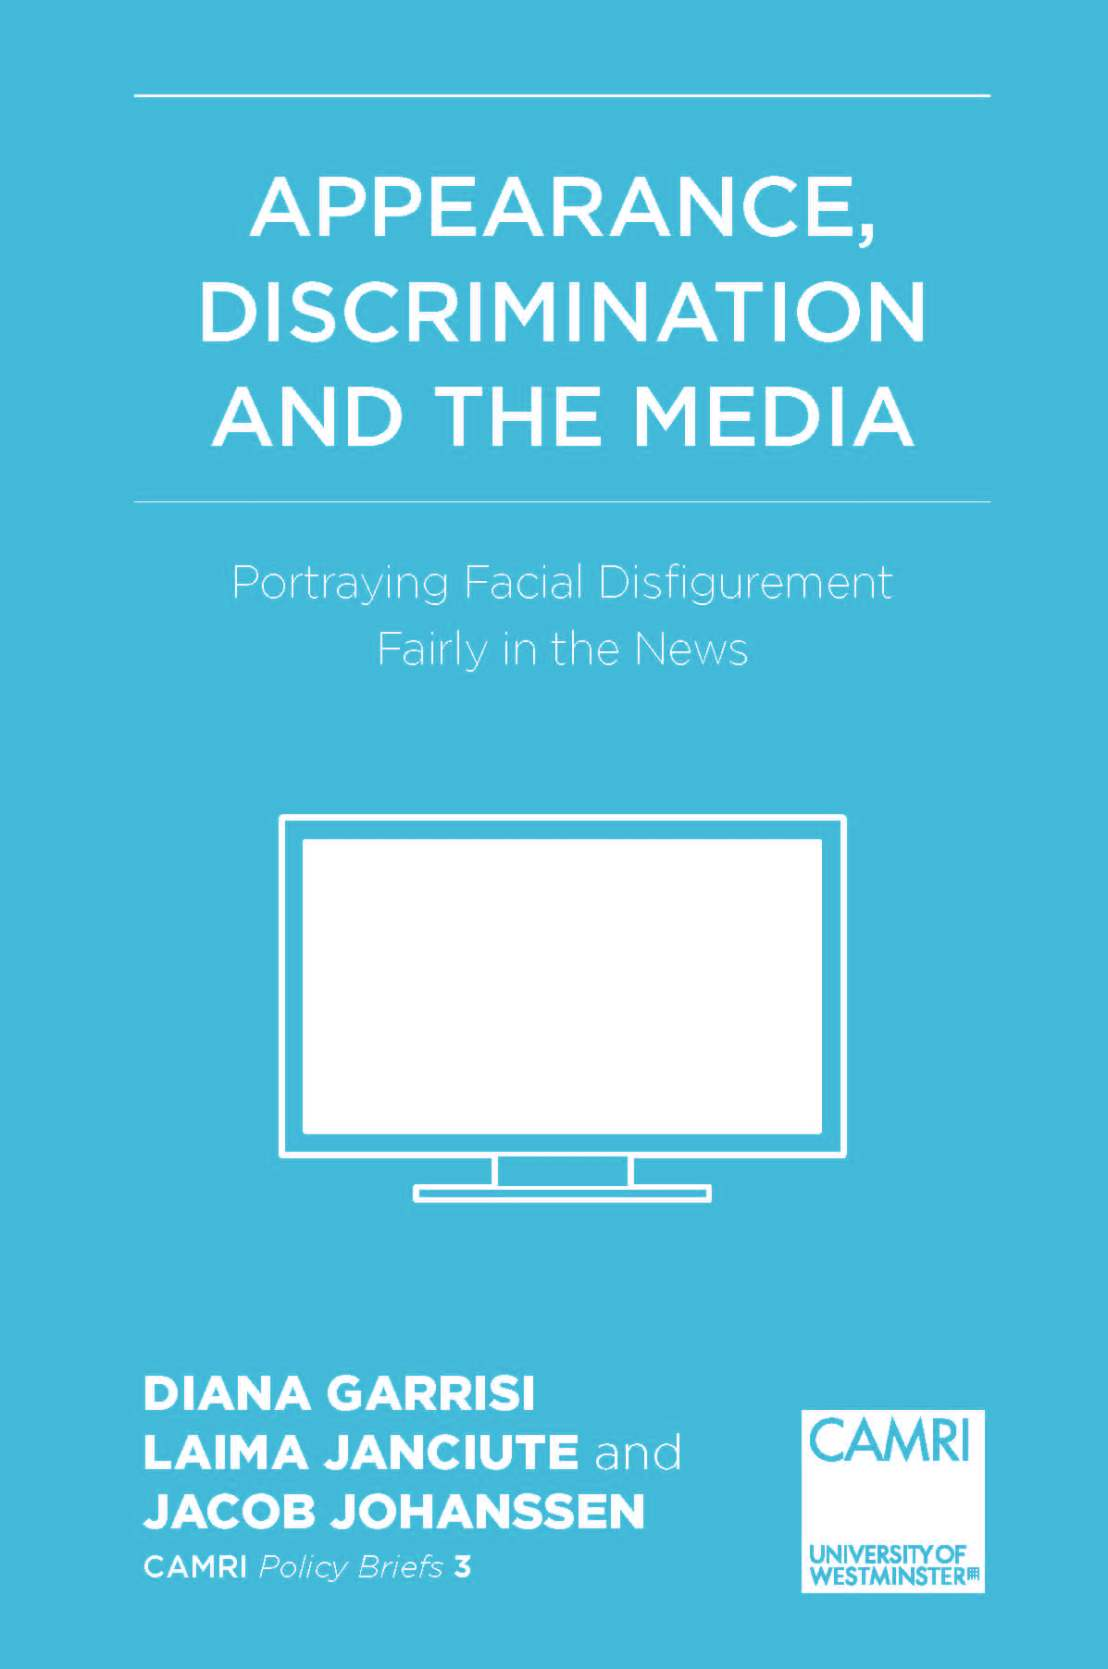 Action needed on disfigurement in media